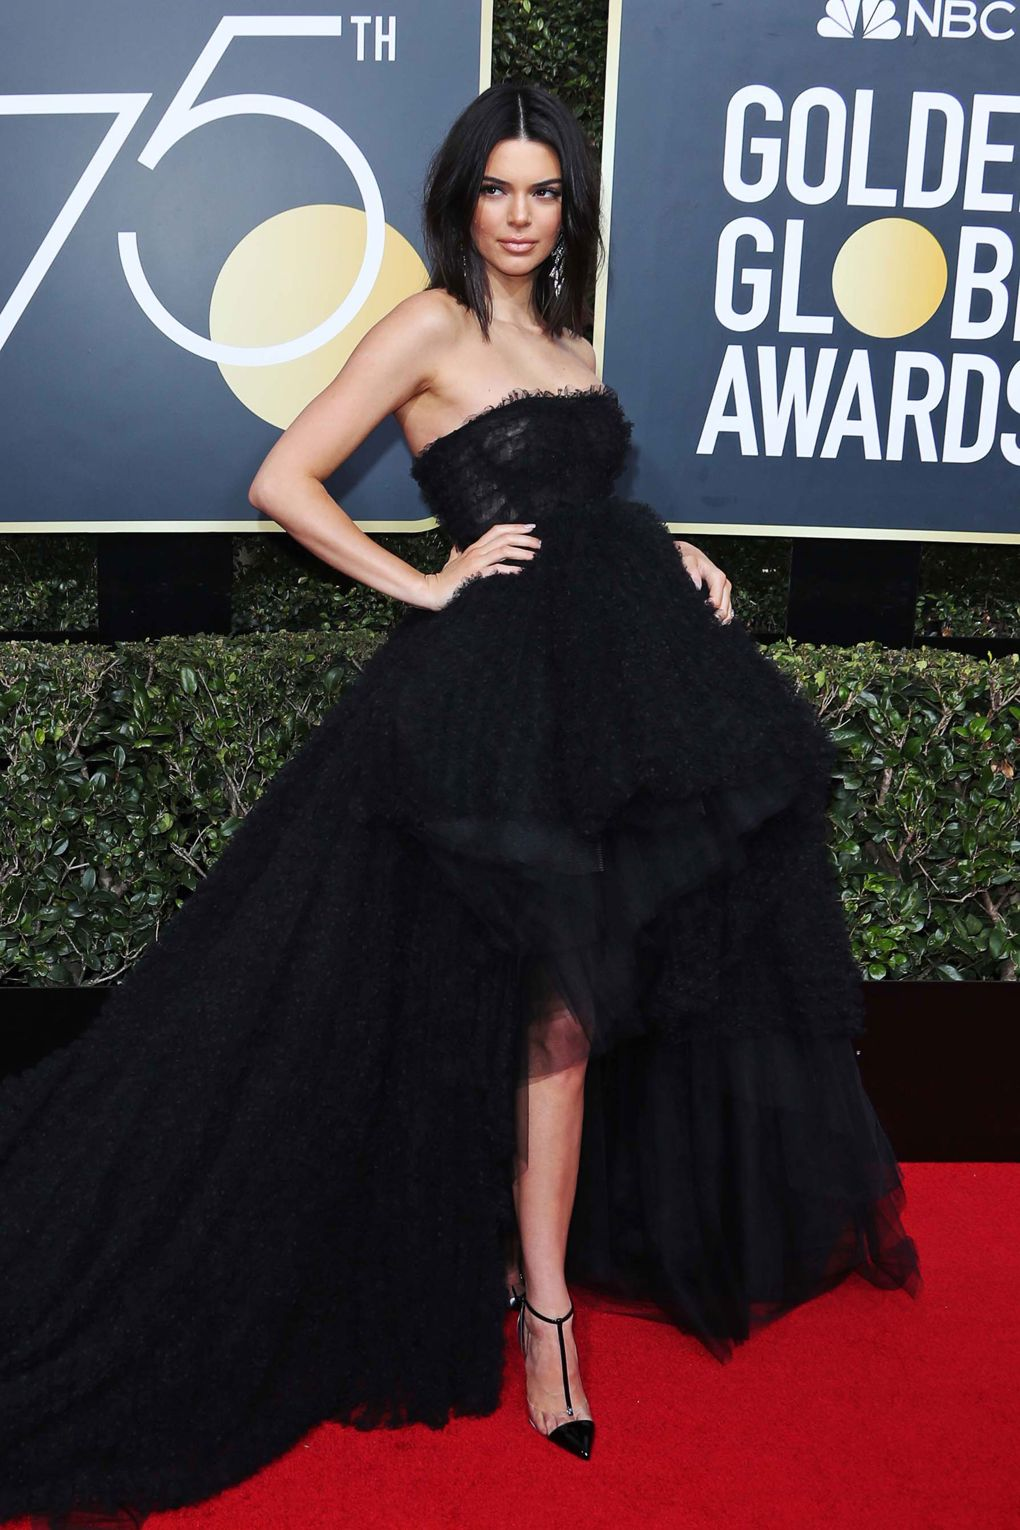 golden globes 2019 - photo #45